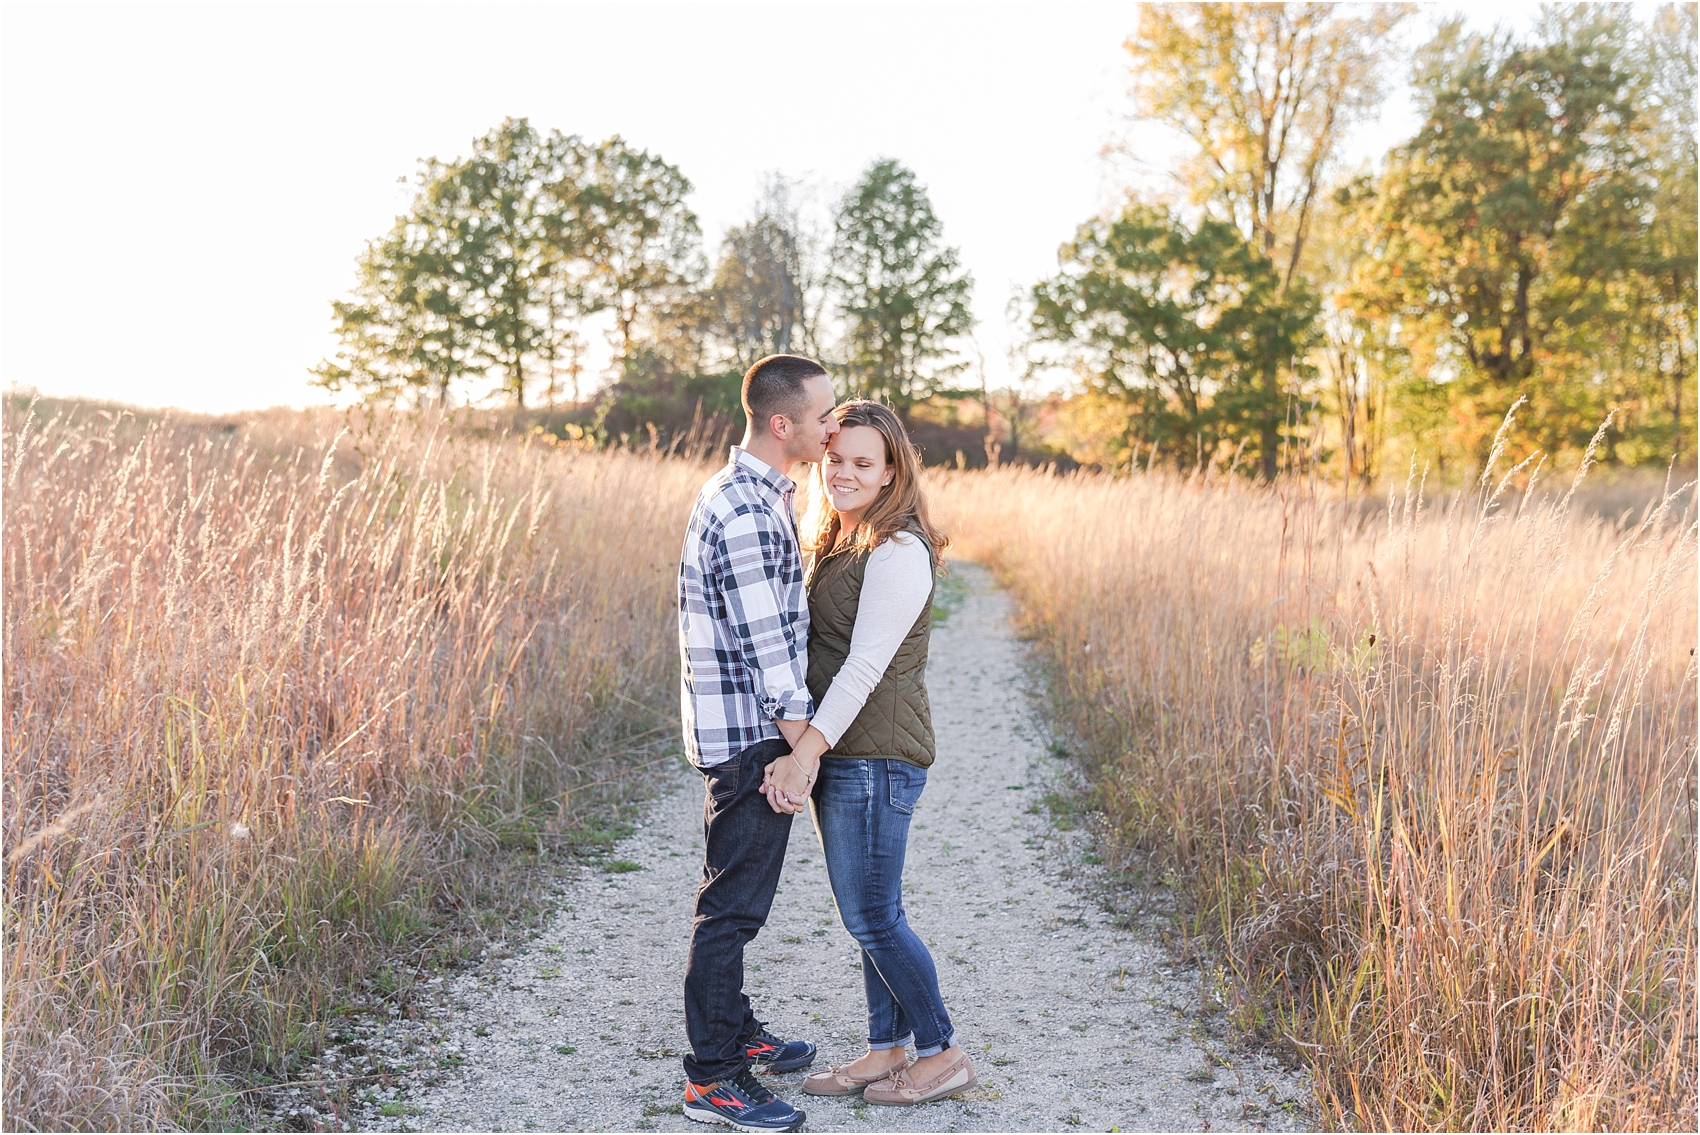 emotional-candid-romantic-engagement-photos-in-detroit-chicago-northern-michigan-by-courtney-carolyn-photography_0027.jpg